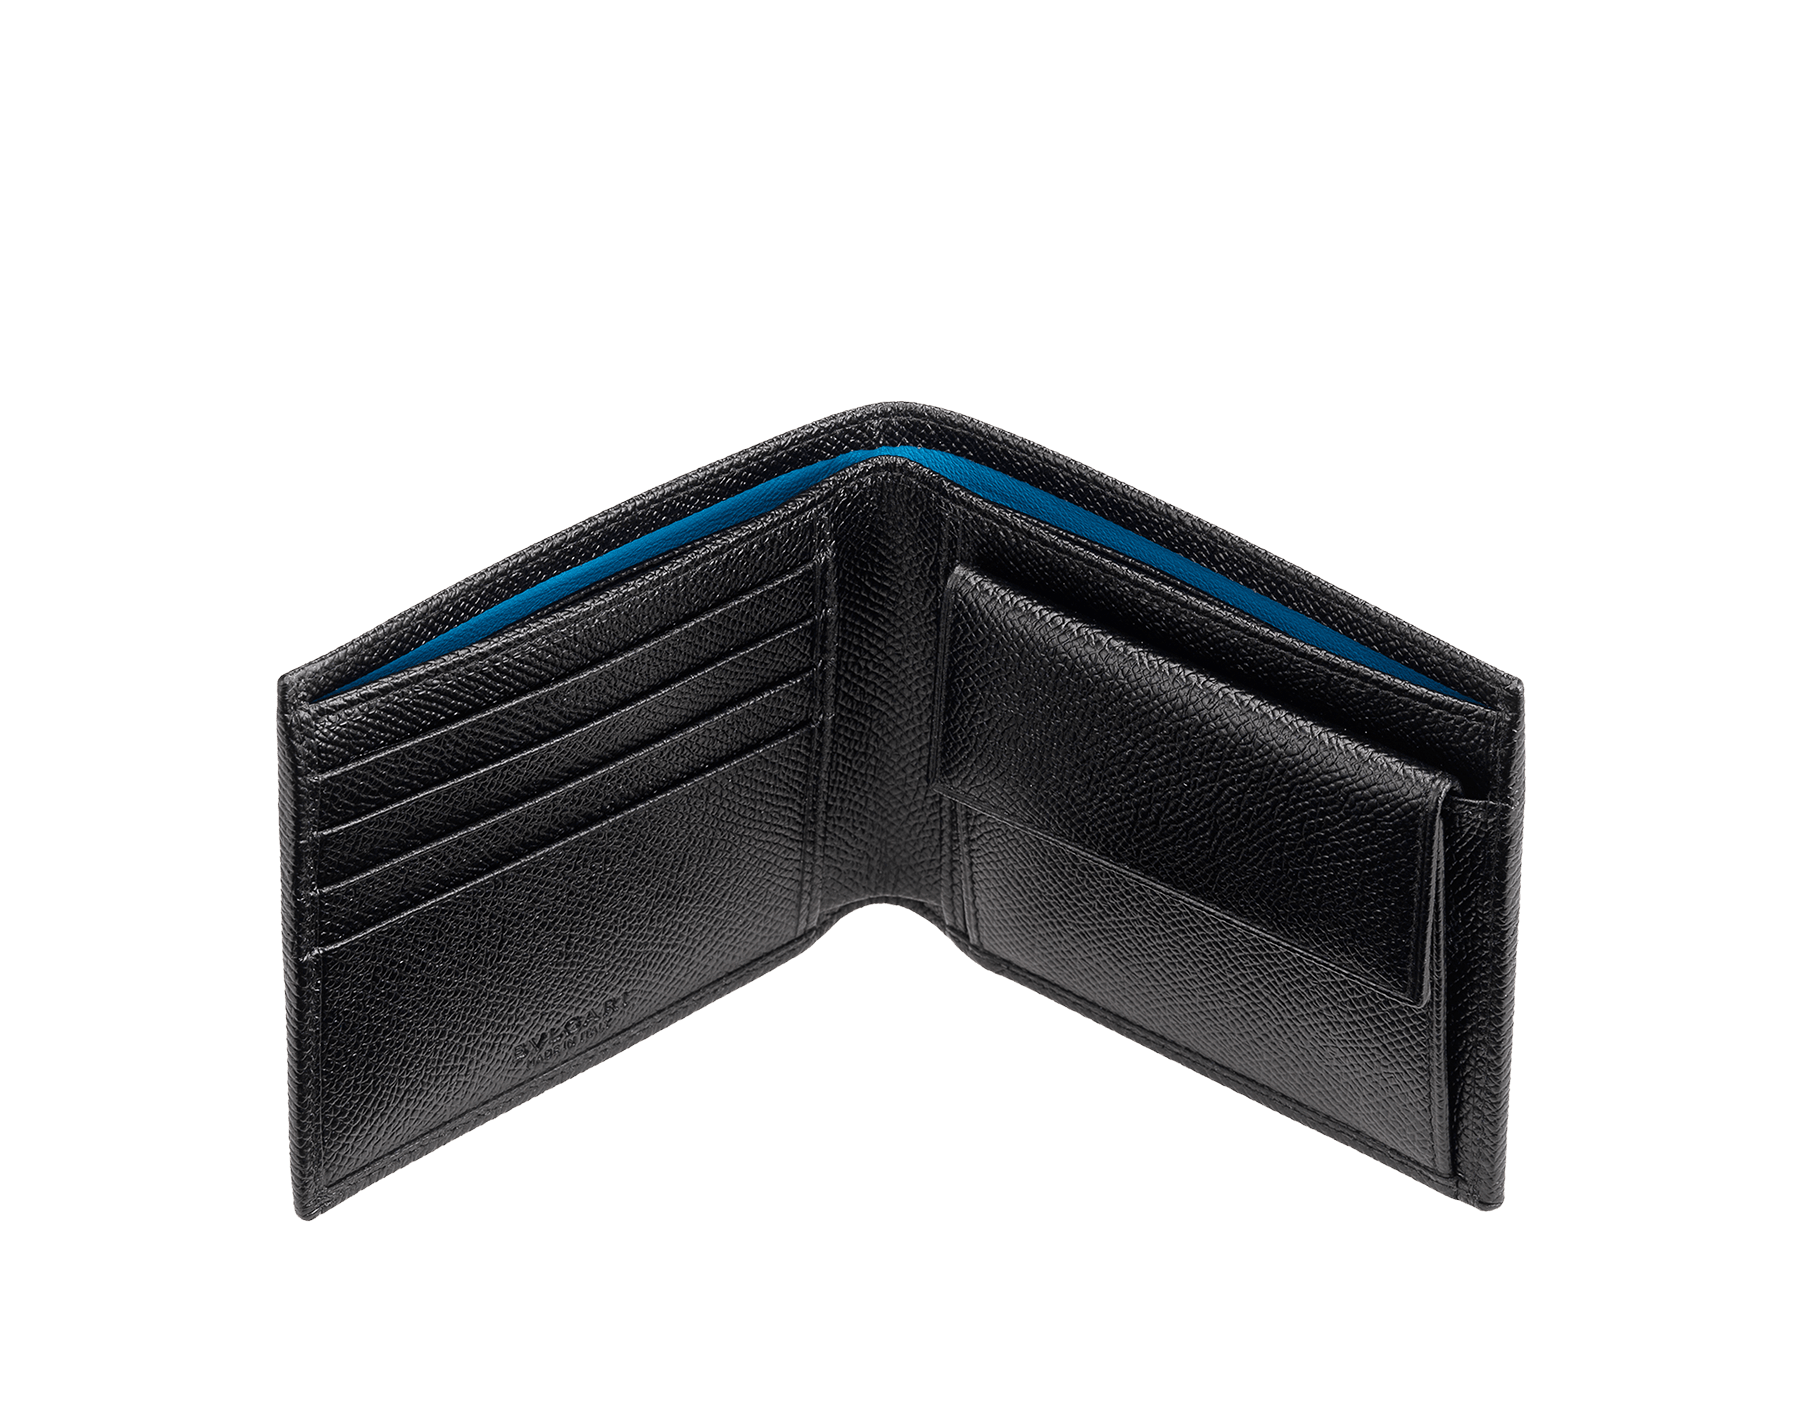 """BVLGARI BVLGARI"" compact wallet in Pluto Stone grey grained calf leather and Denim Sapphire blue grained calf leather. Iconic logo-bearing embellishment in palladium-plated brass. BBM-WLT-ITAL-gcl image 2"